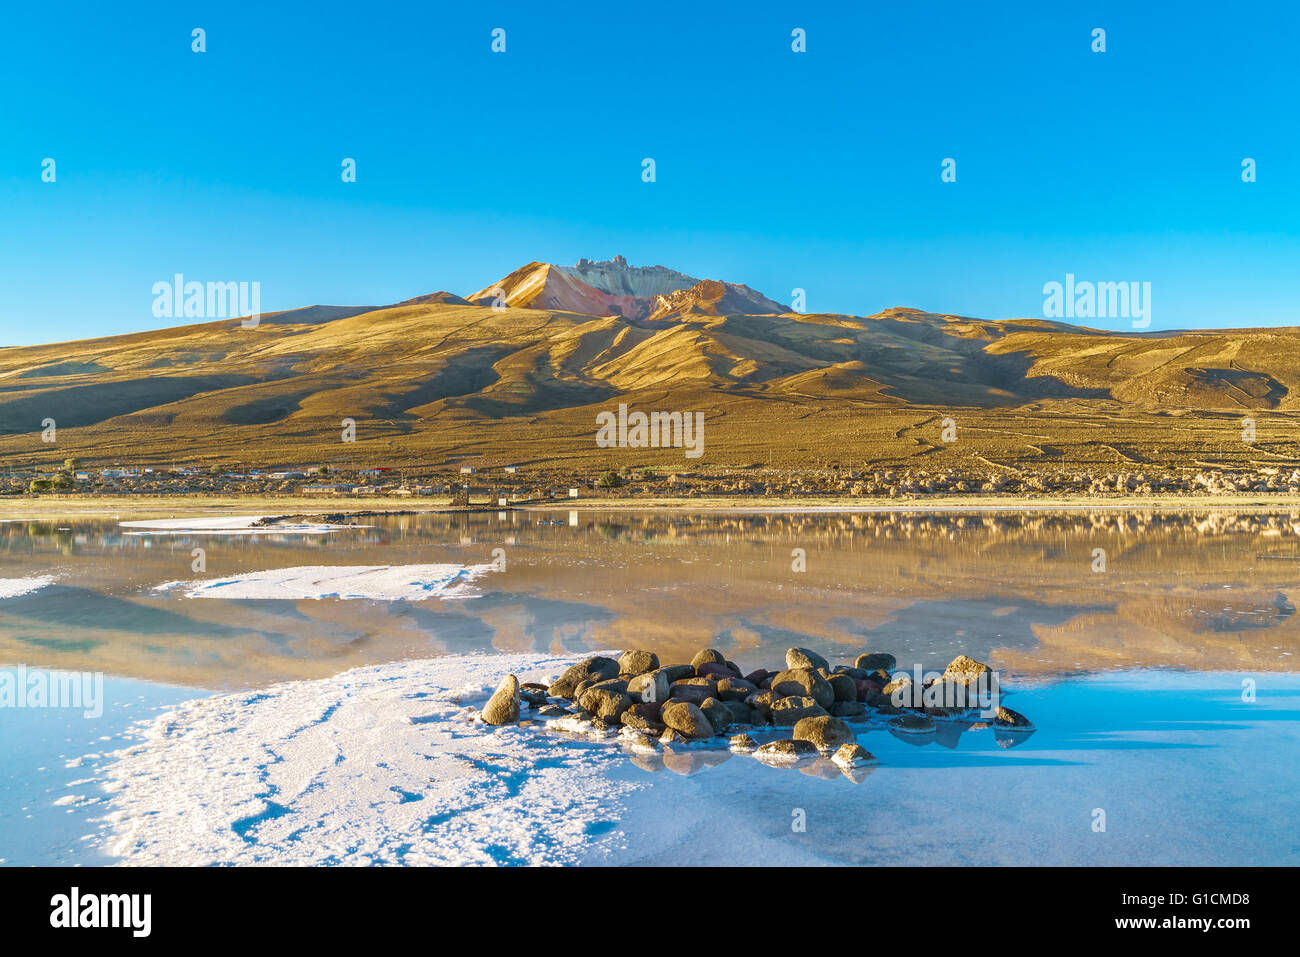 View of dormant volcano in Uyuni Salt Flat in the evening - Stock Image